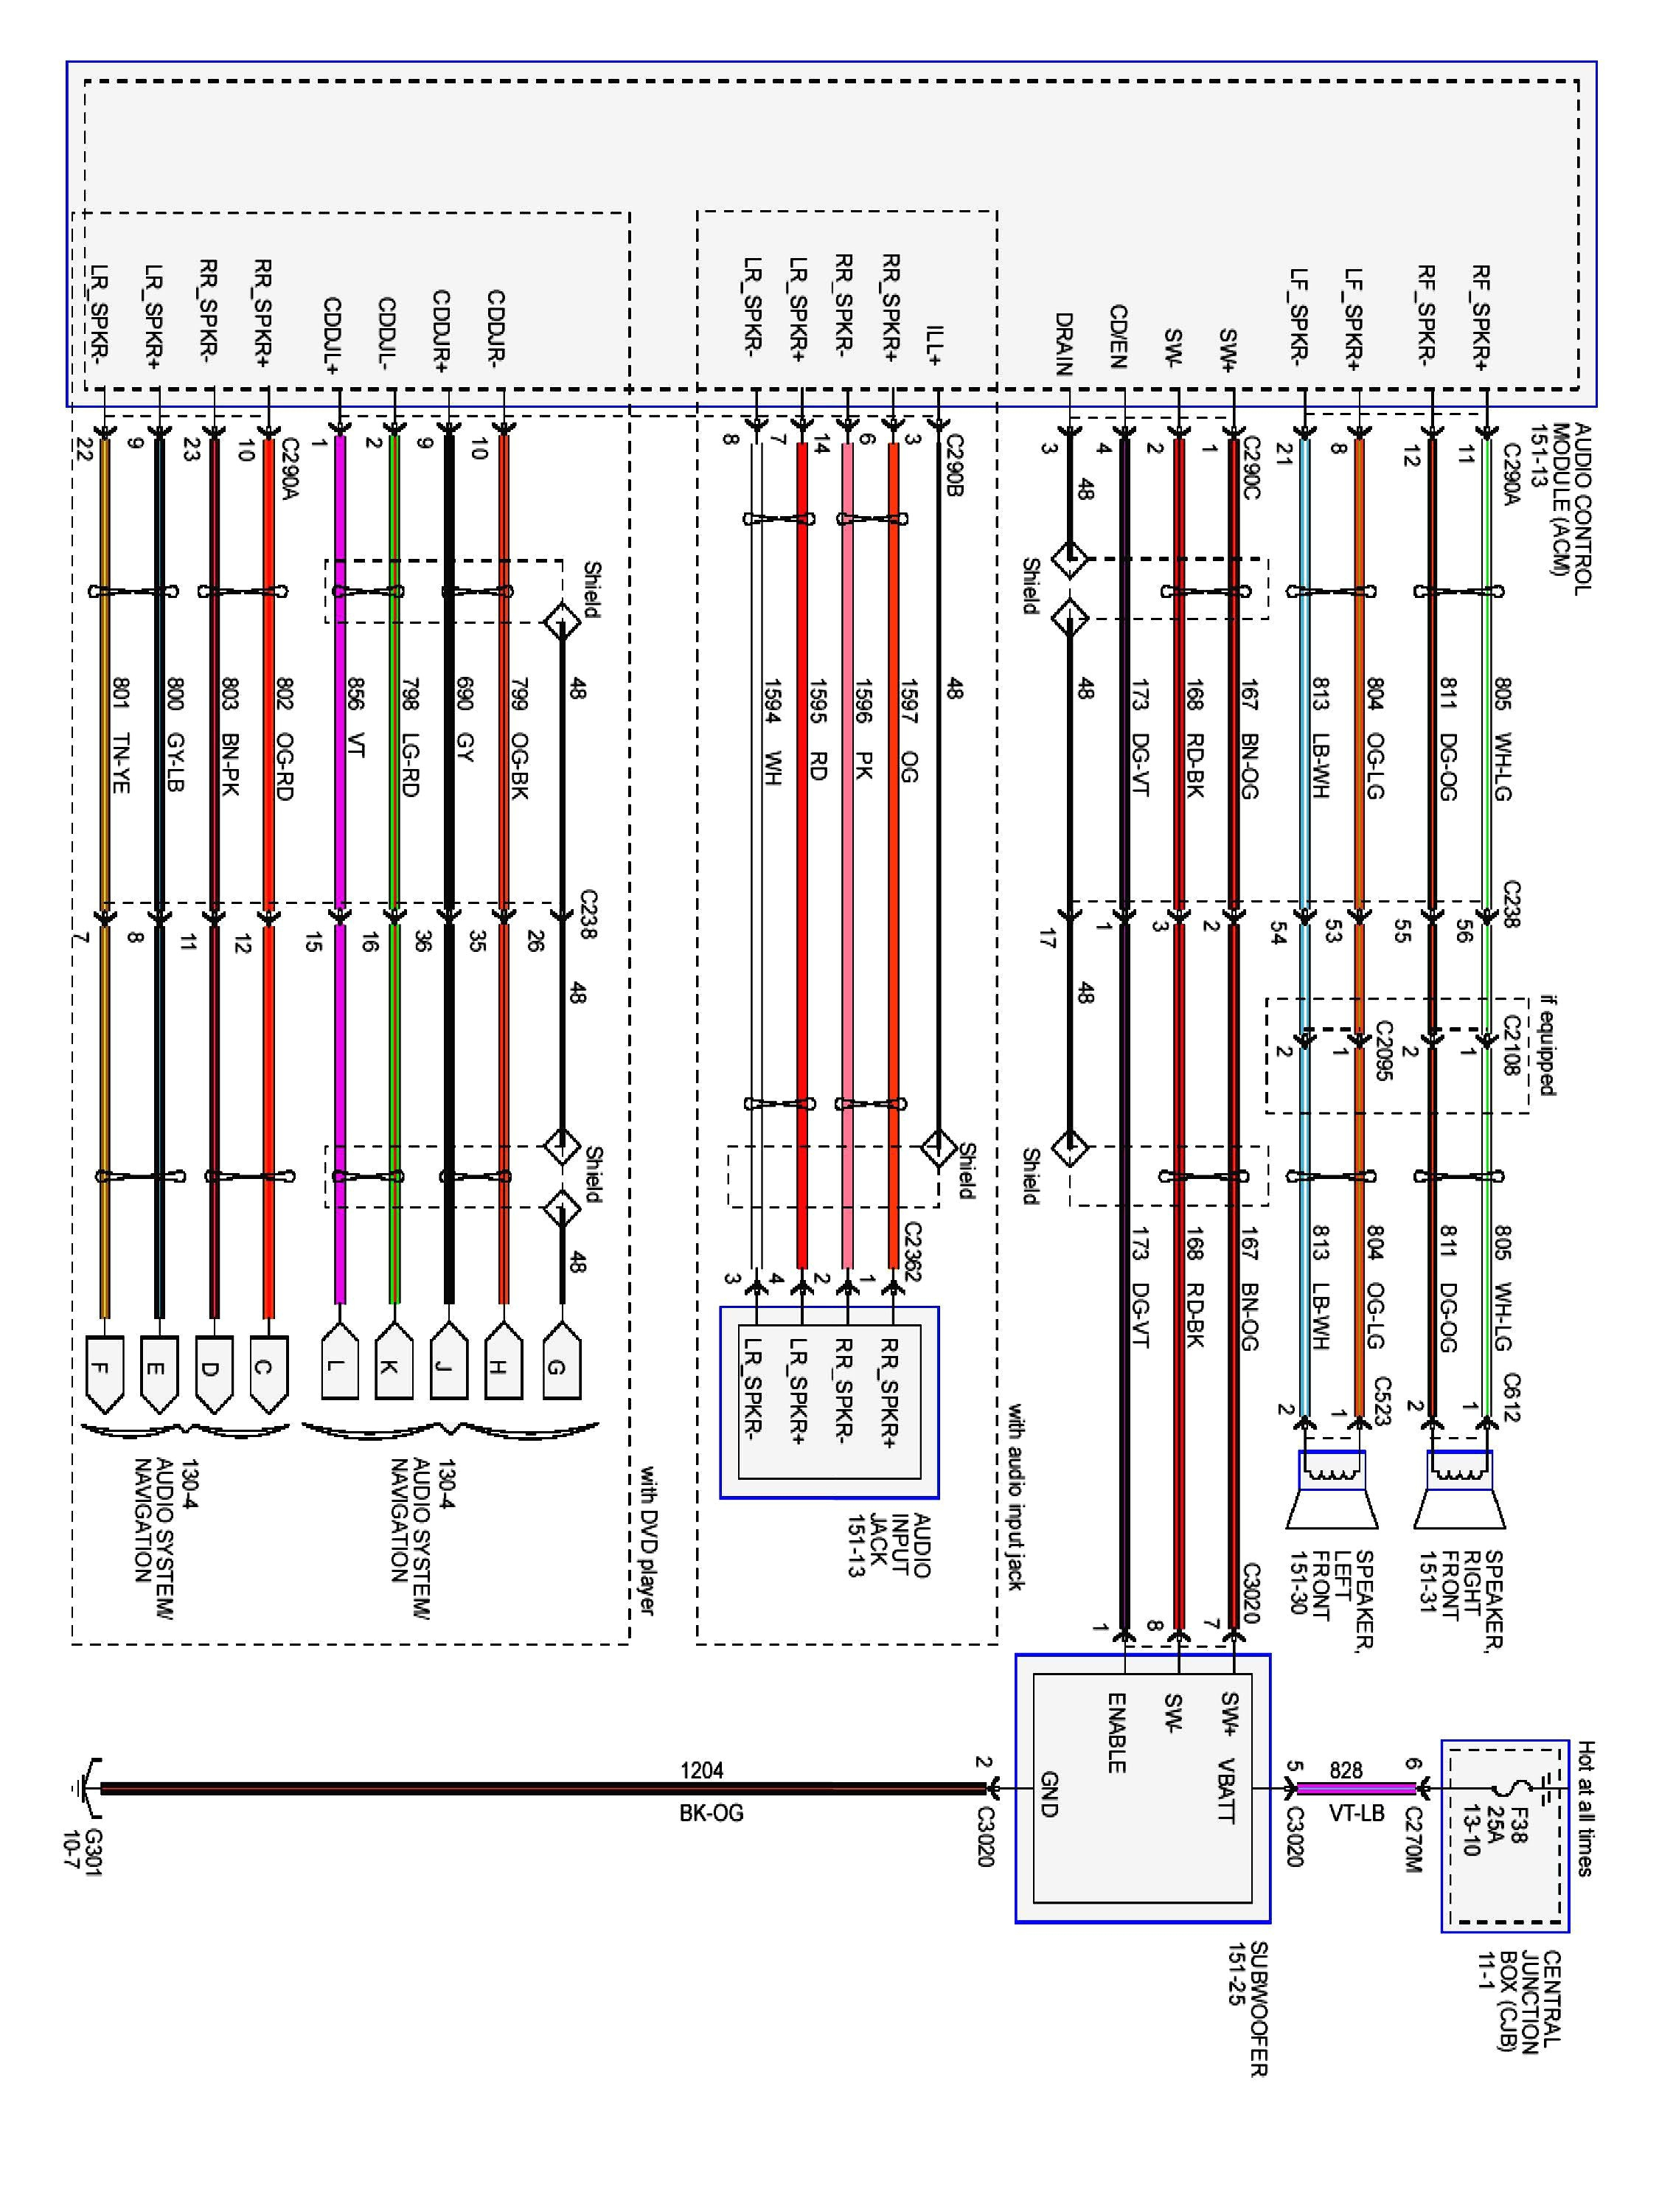 2003 Ford Focus Radio Wiring Diagram Download Wiring Diagram Sample 2013 F-150  7 Pin Trailer Wiring Diagram 2002 F150 Wiring Harness